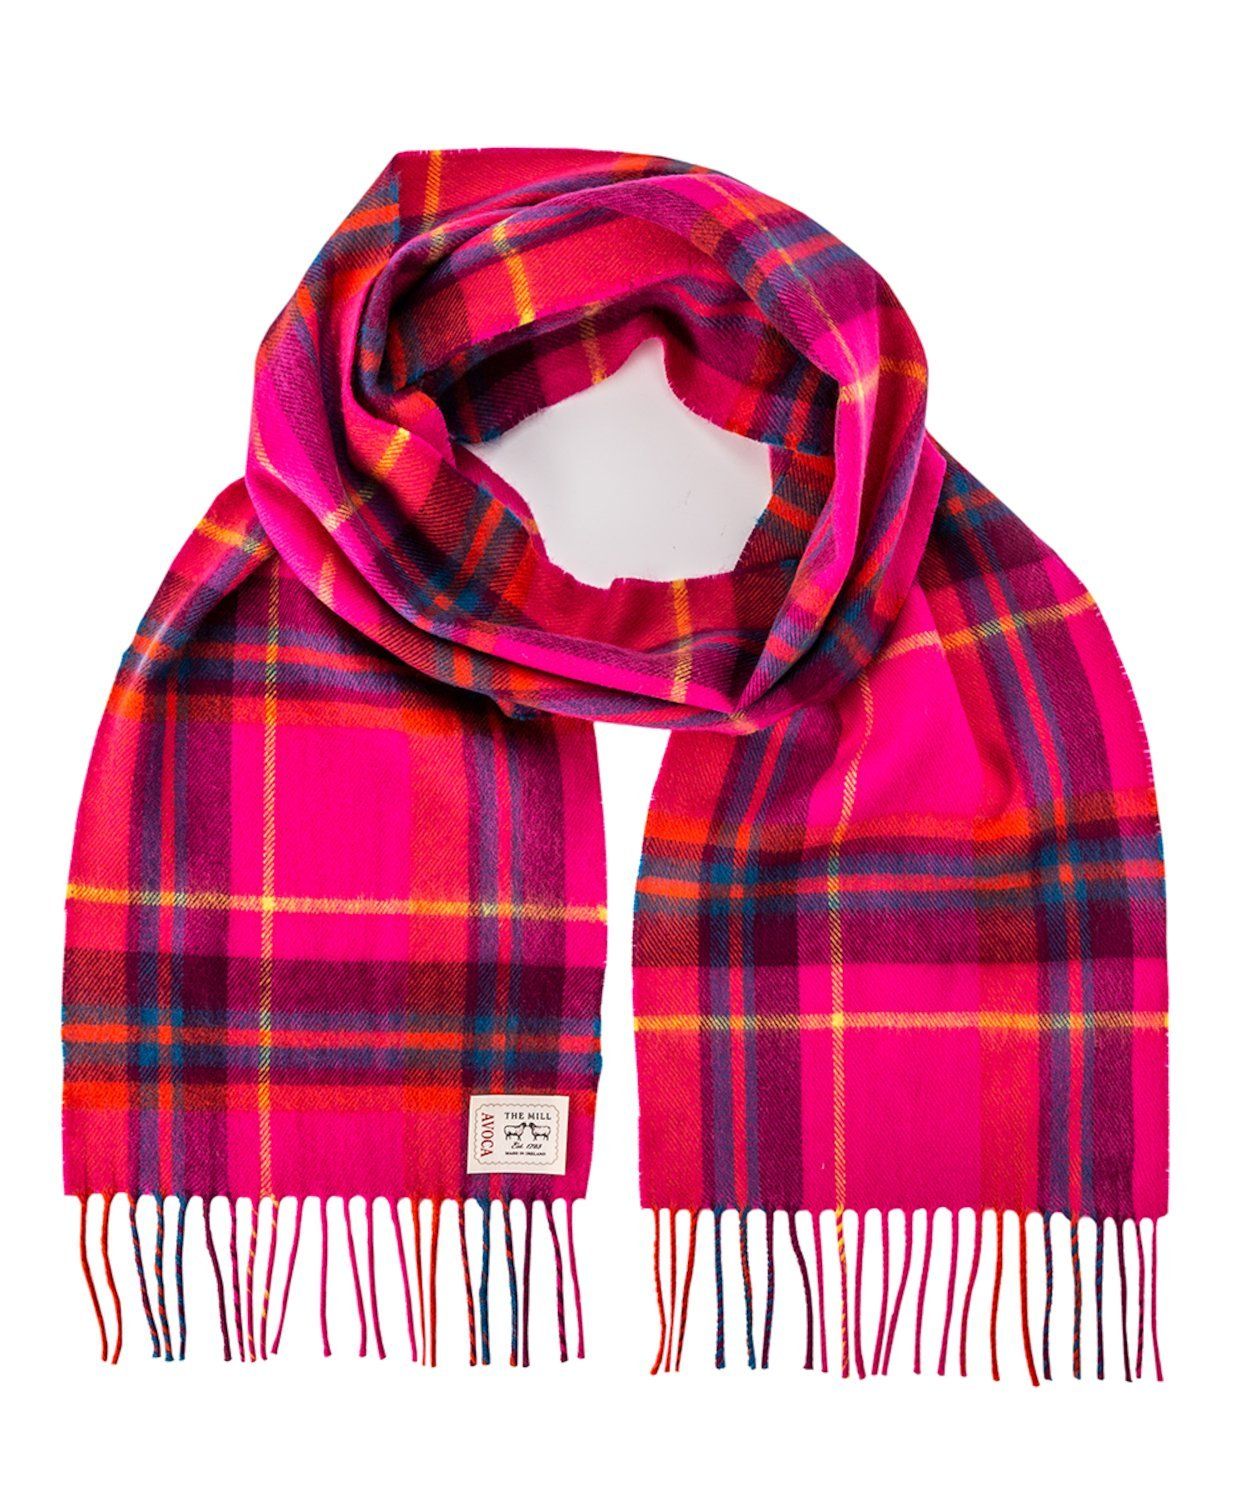 Avoca 100% Lambswool Scarf (Made in Ireland) Hot Pink design